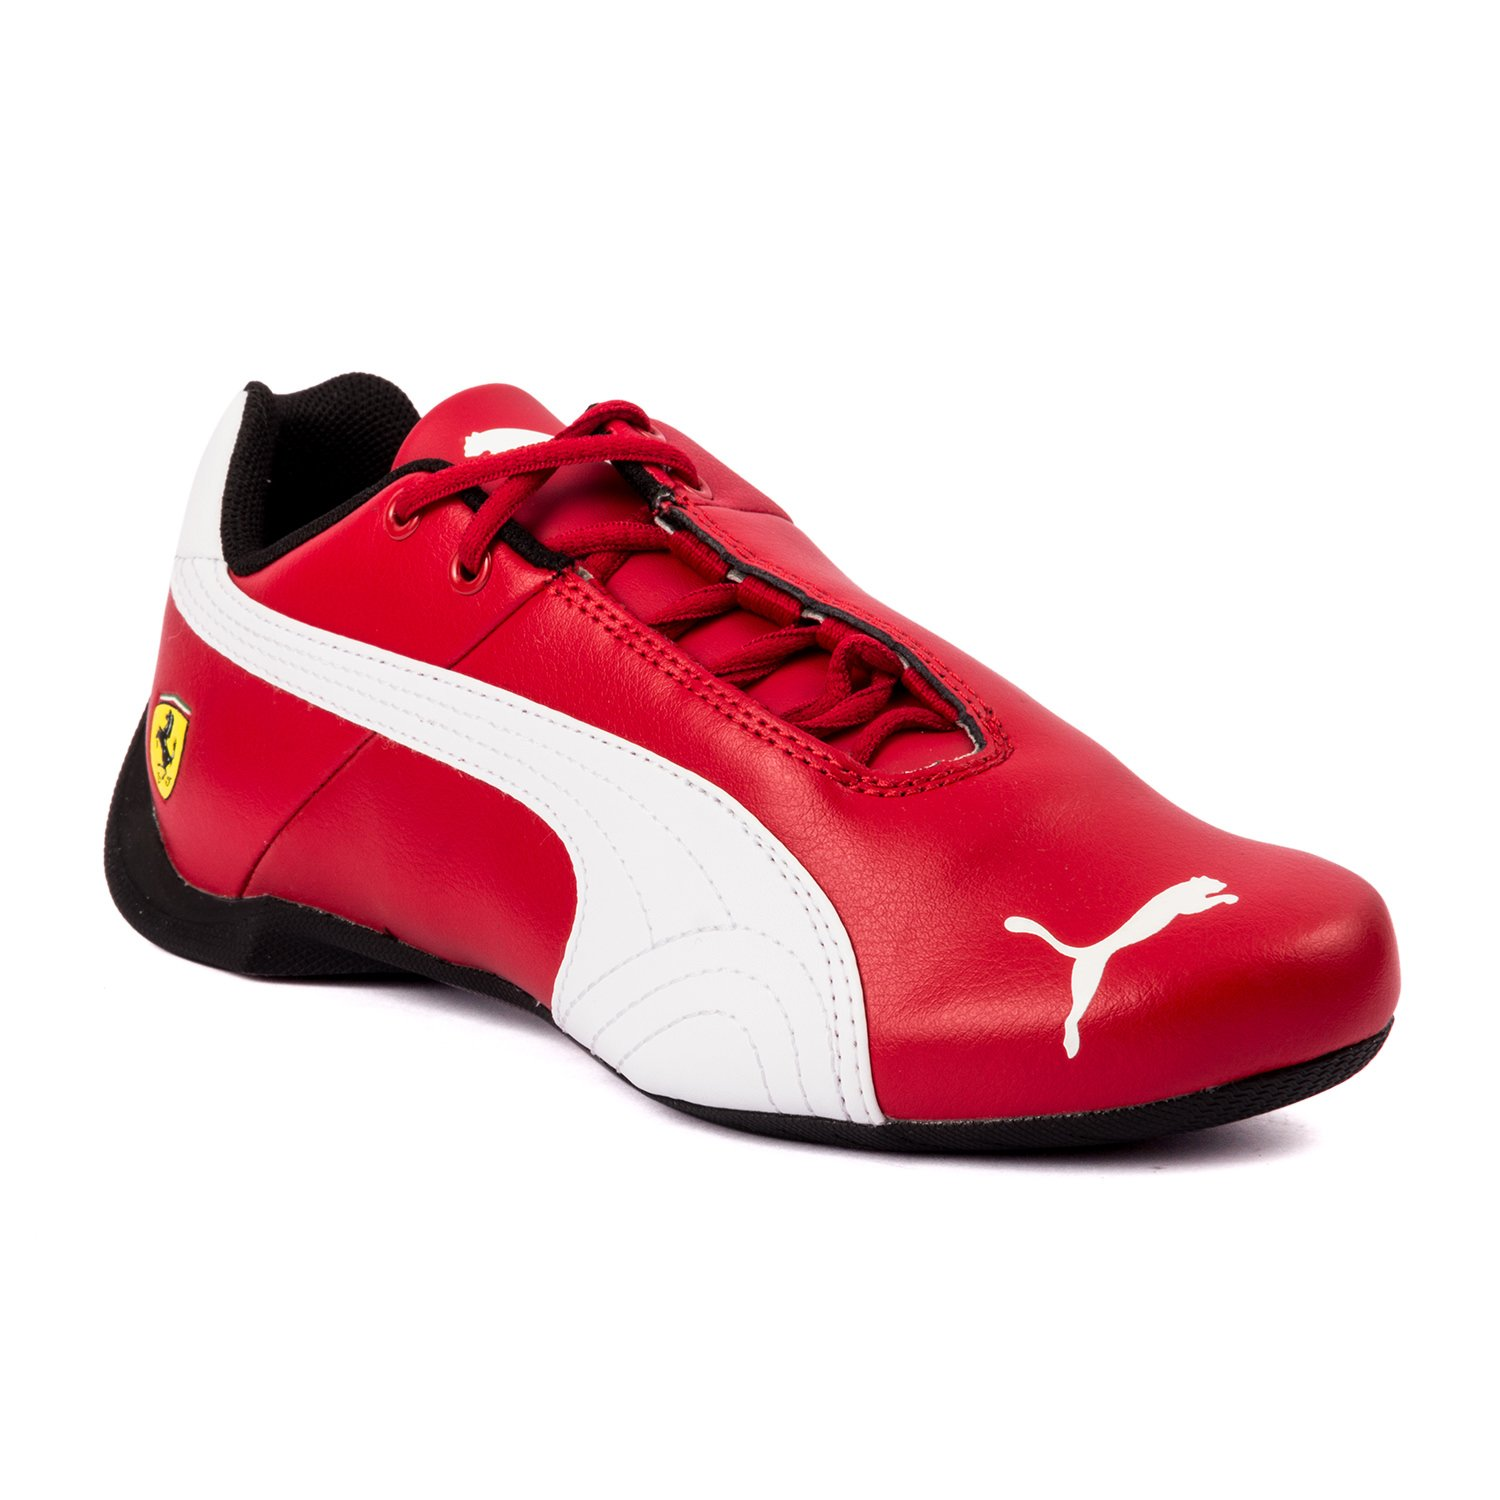 Beauty Men Puma Norld Wide Renowm Sneaker Puma Ferrari Shoes